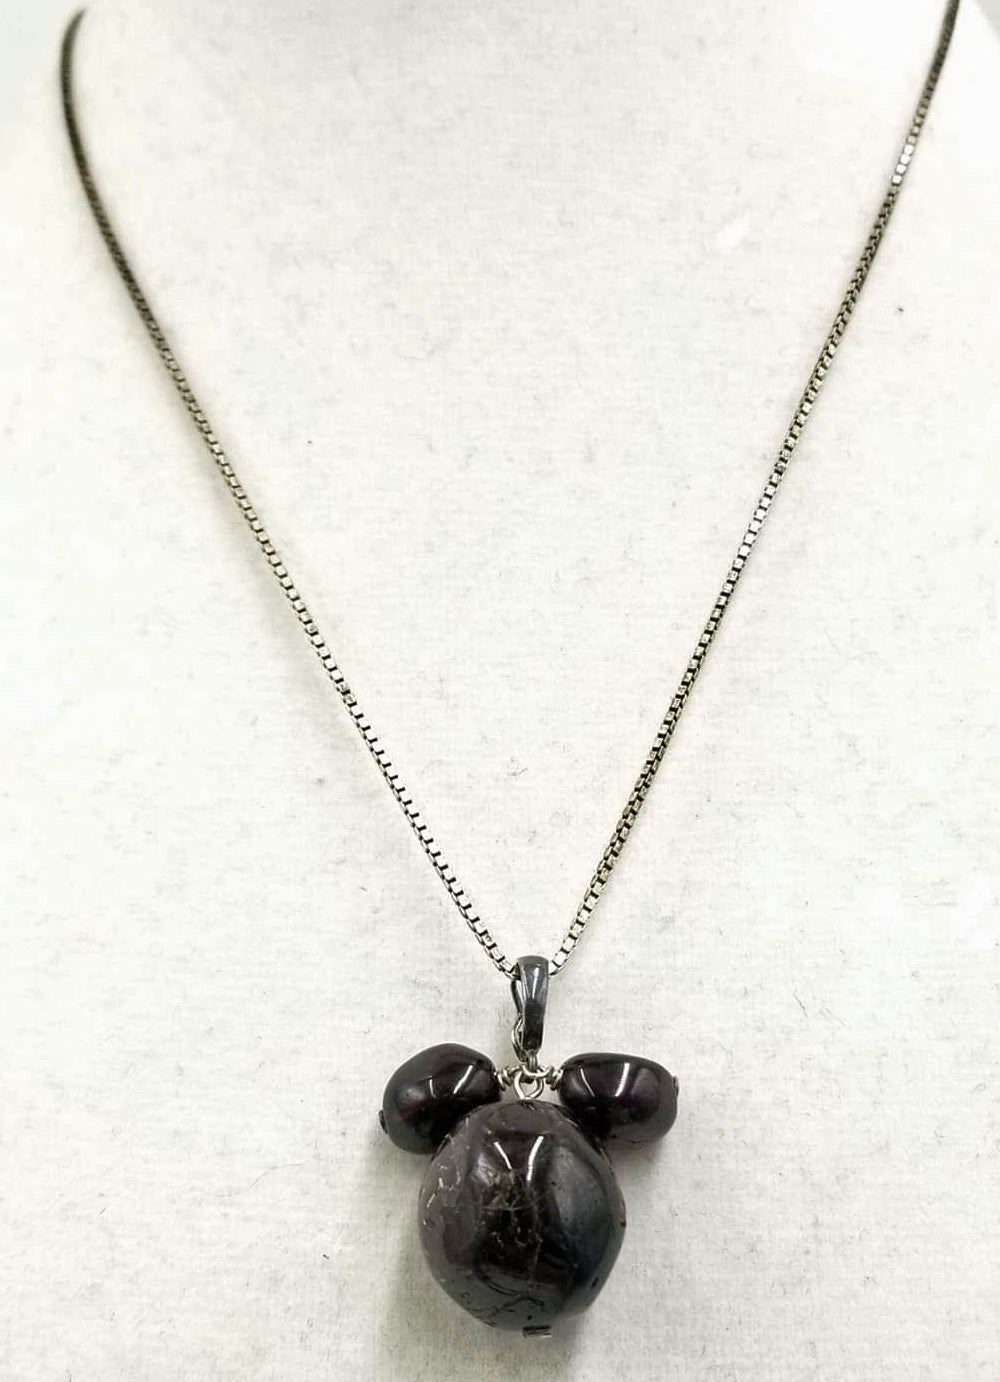 Tripple garnet Sterling Silver necklace.